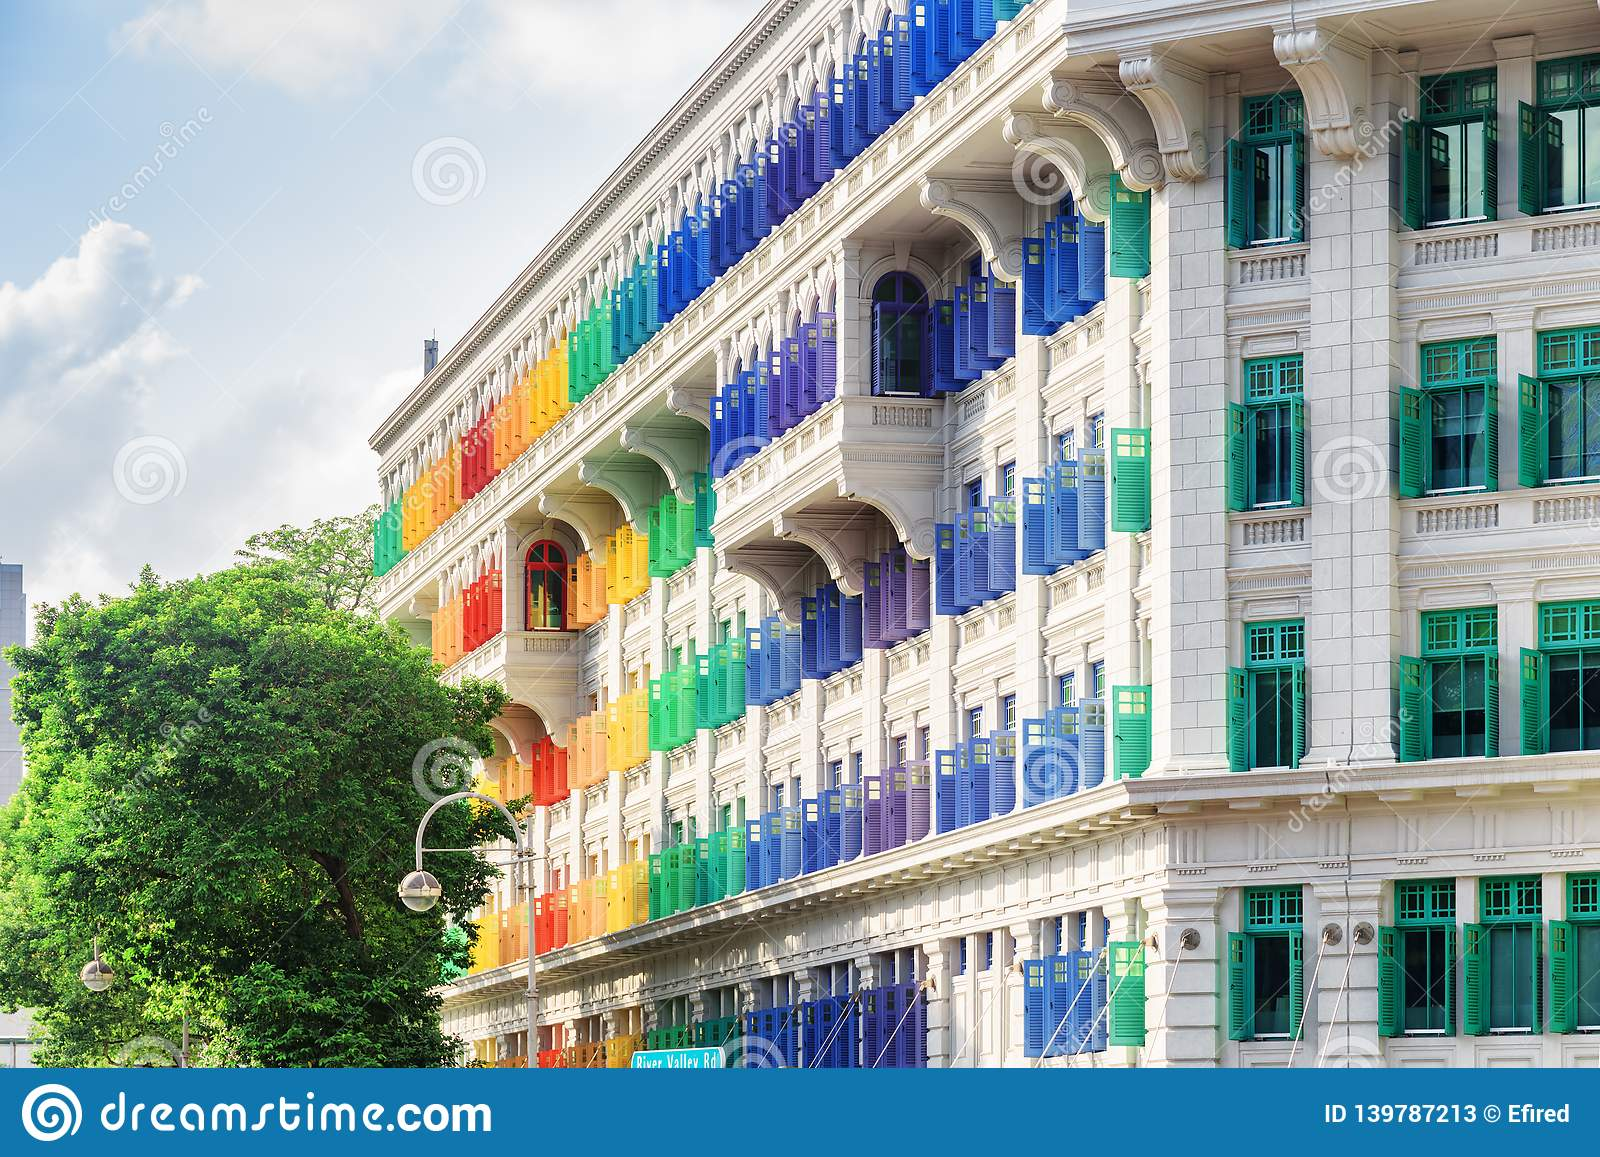 Amazing view of the Old Hill Street Police Station, Singapore